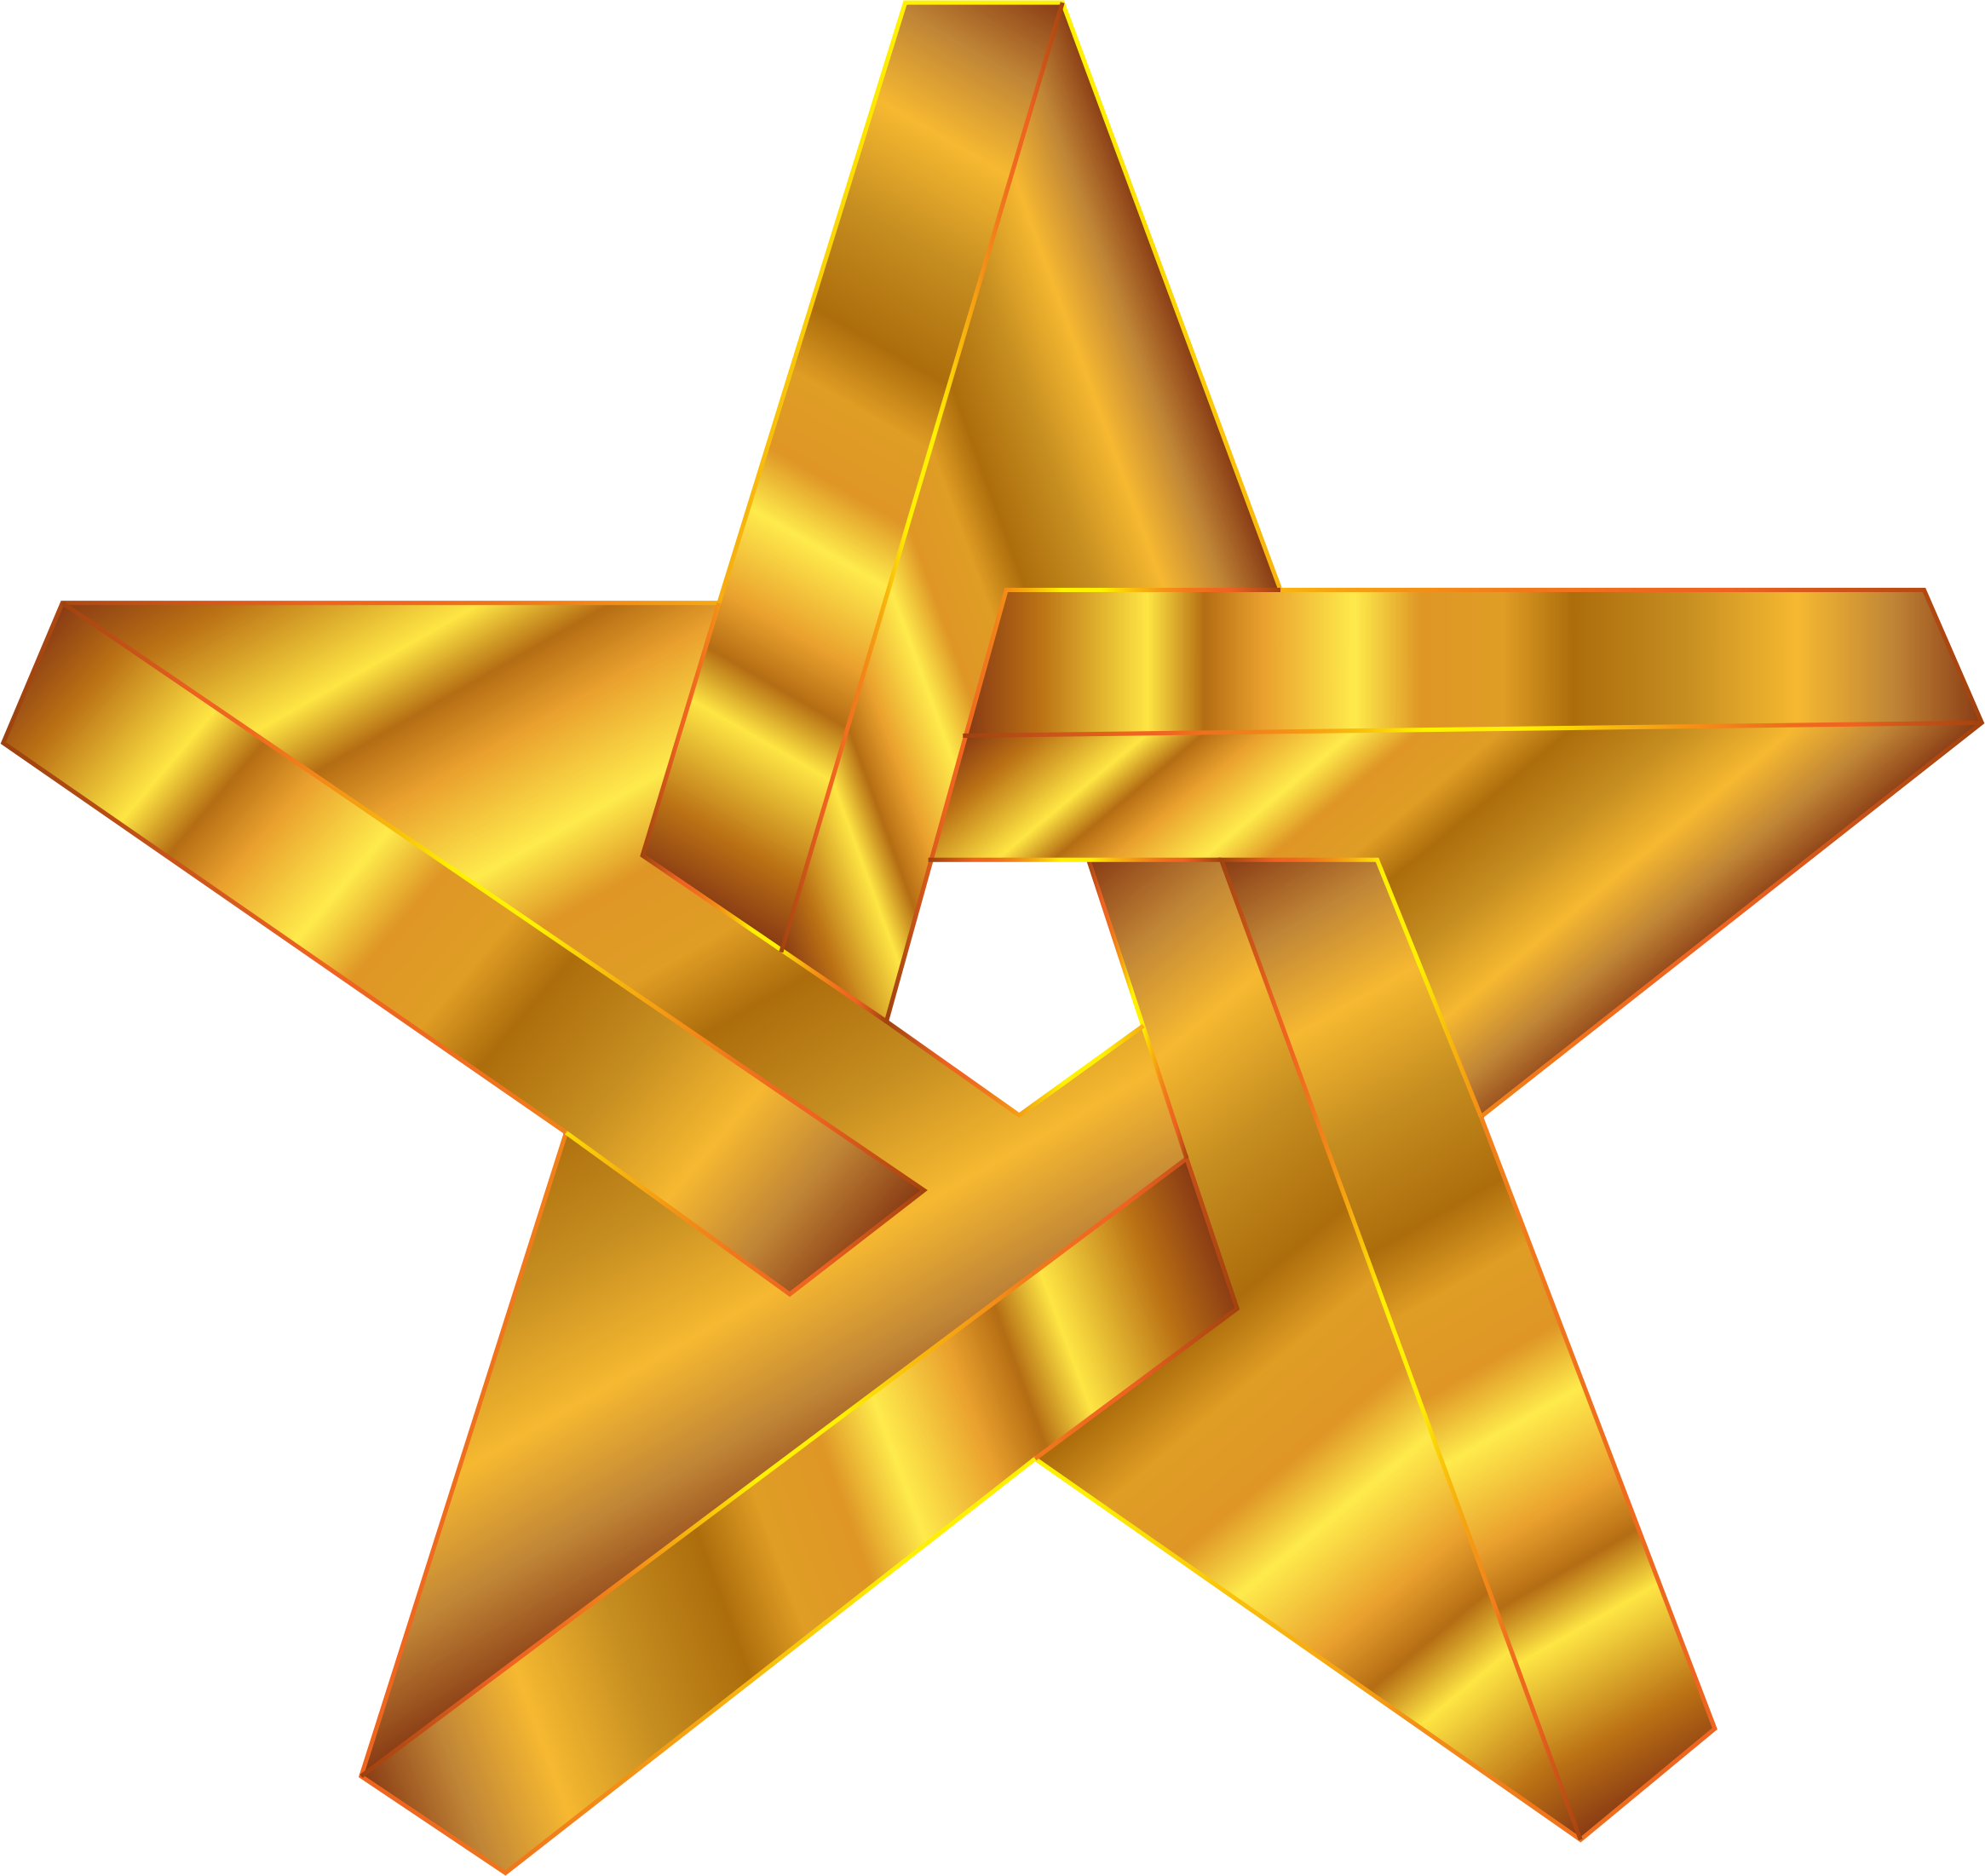 Orange star clipart jpg library Clipart - Impossible Star Gold jpg library